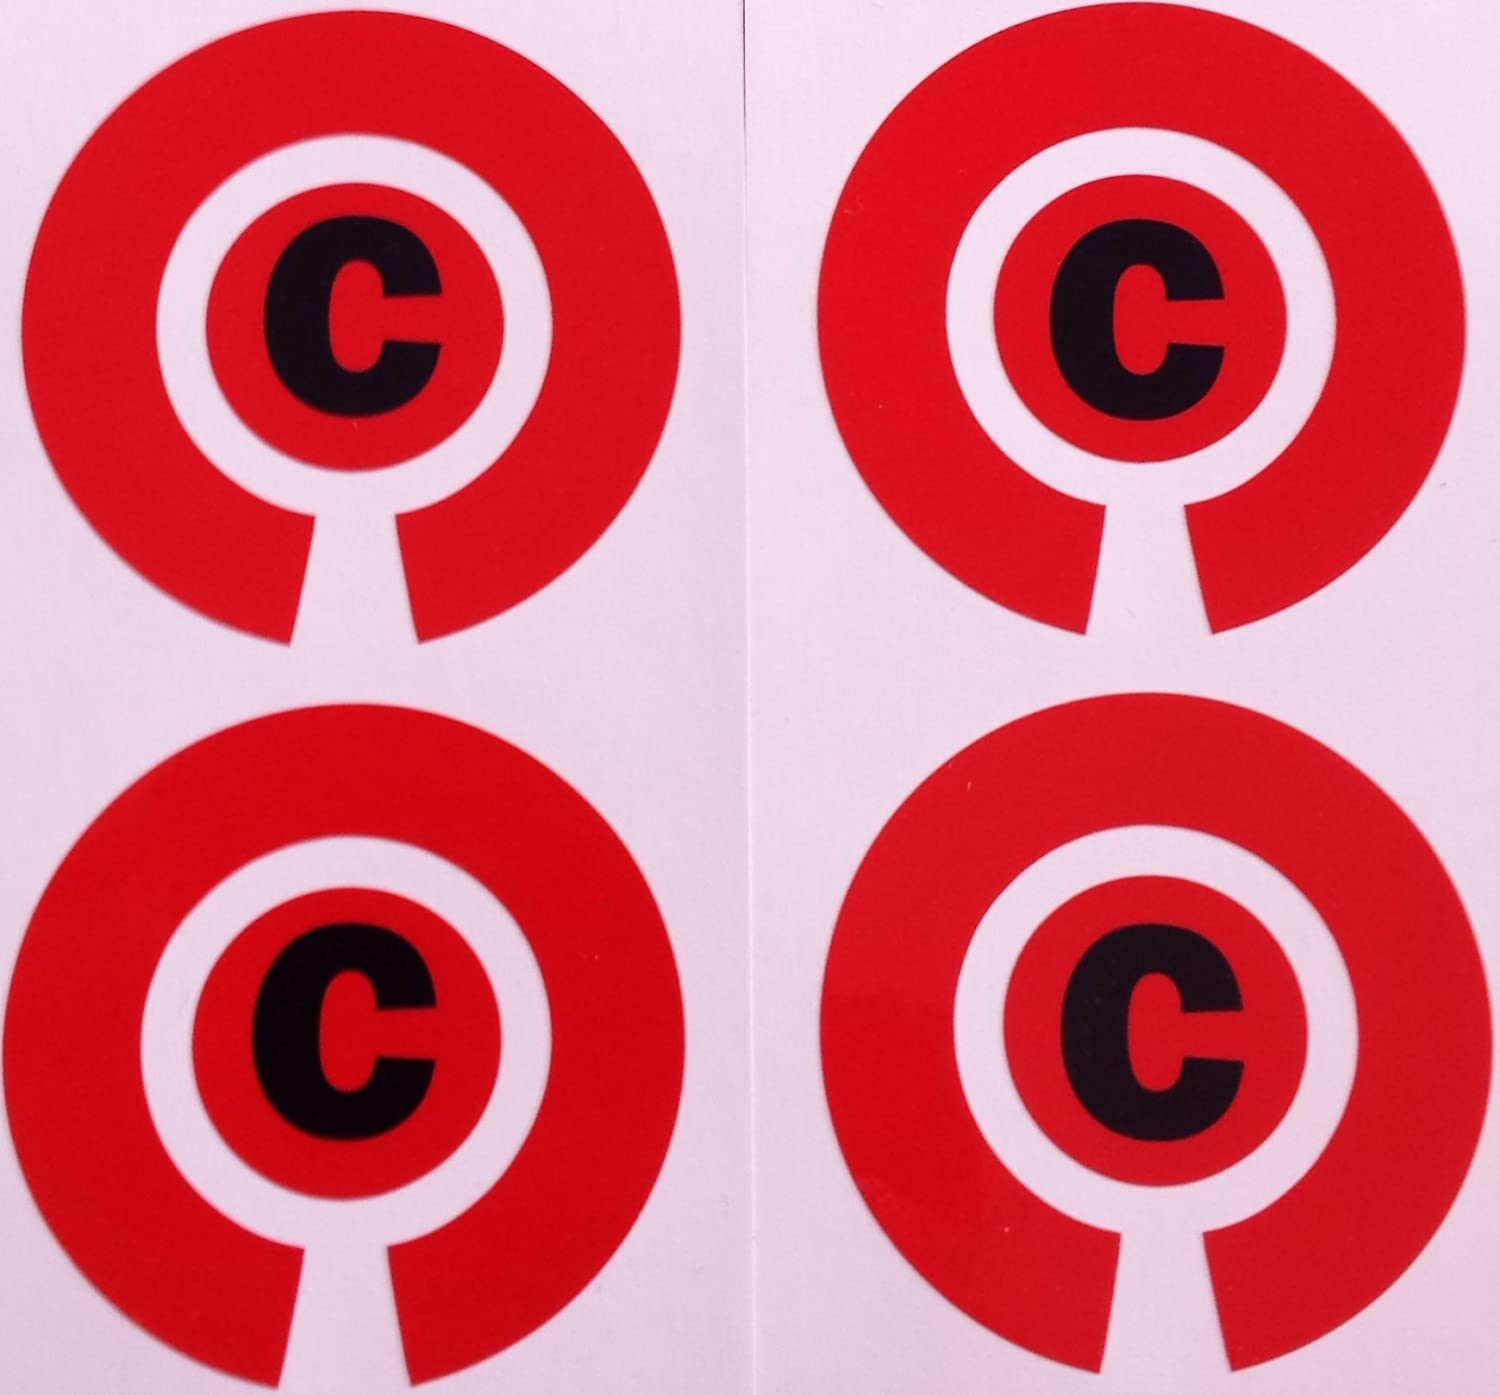 Crown Green Lawn Indoor Bowls Adhesive Lettered Coloured Marker Labels Set of 4 (Red, C)